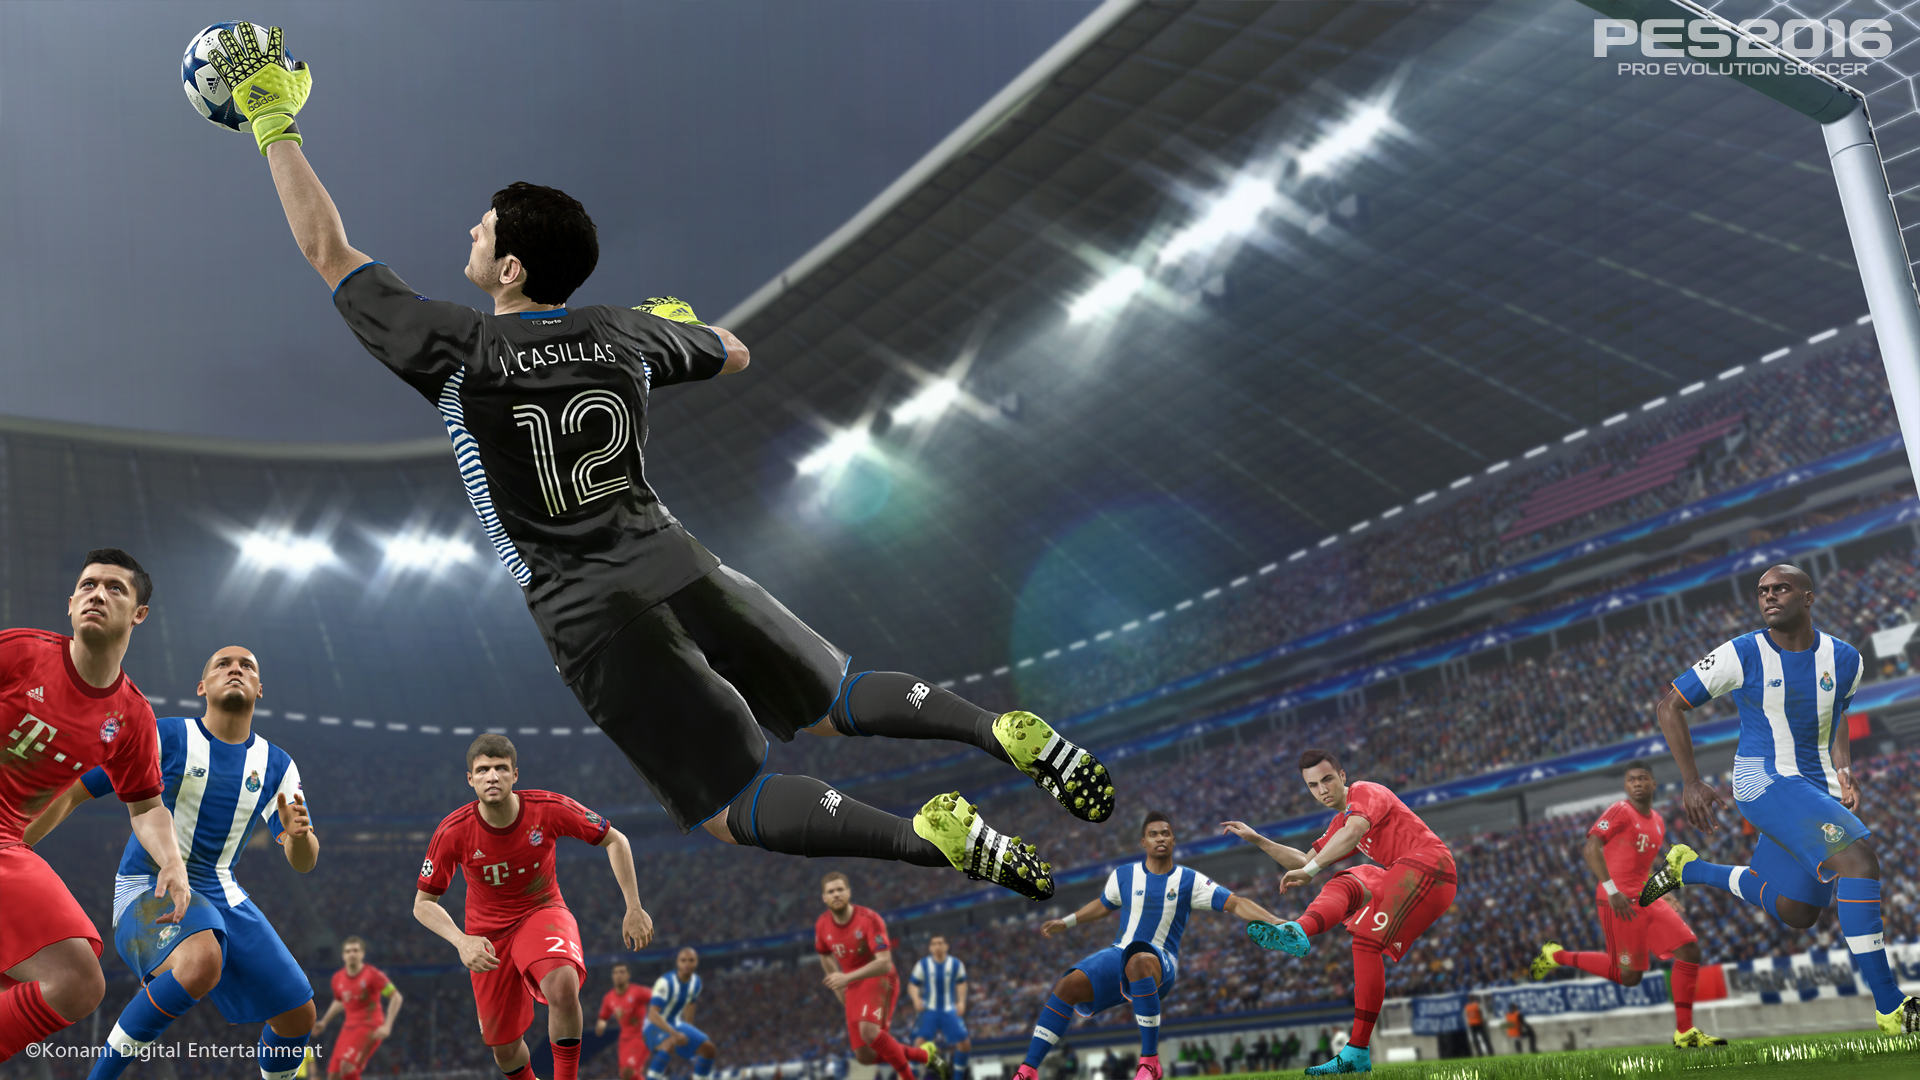 Pro Evolution Soccer 2016 finally gets accurate rosters next week